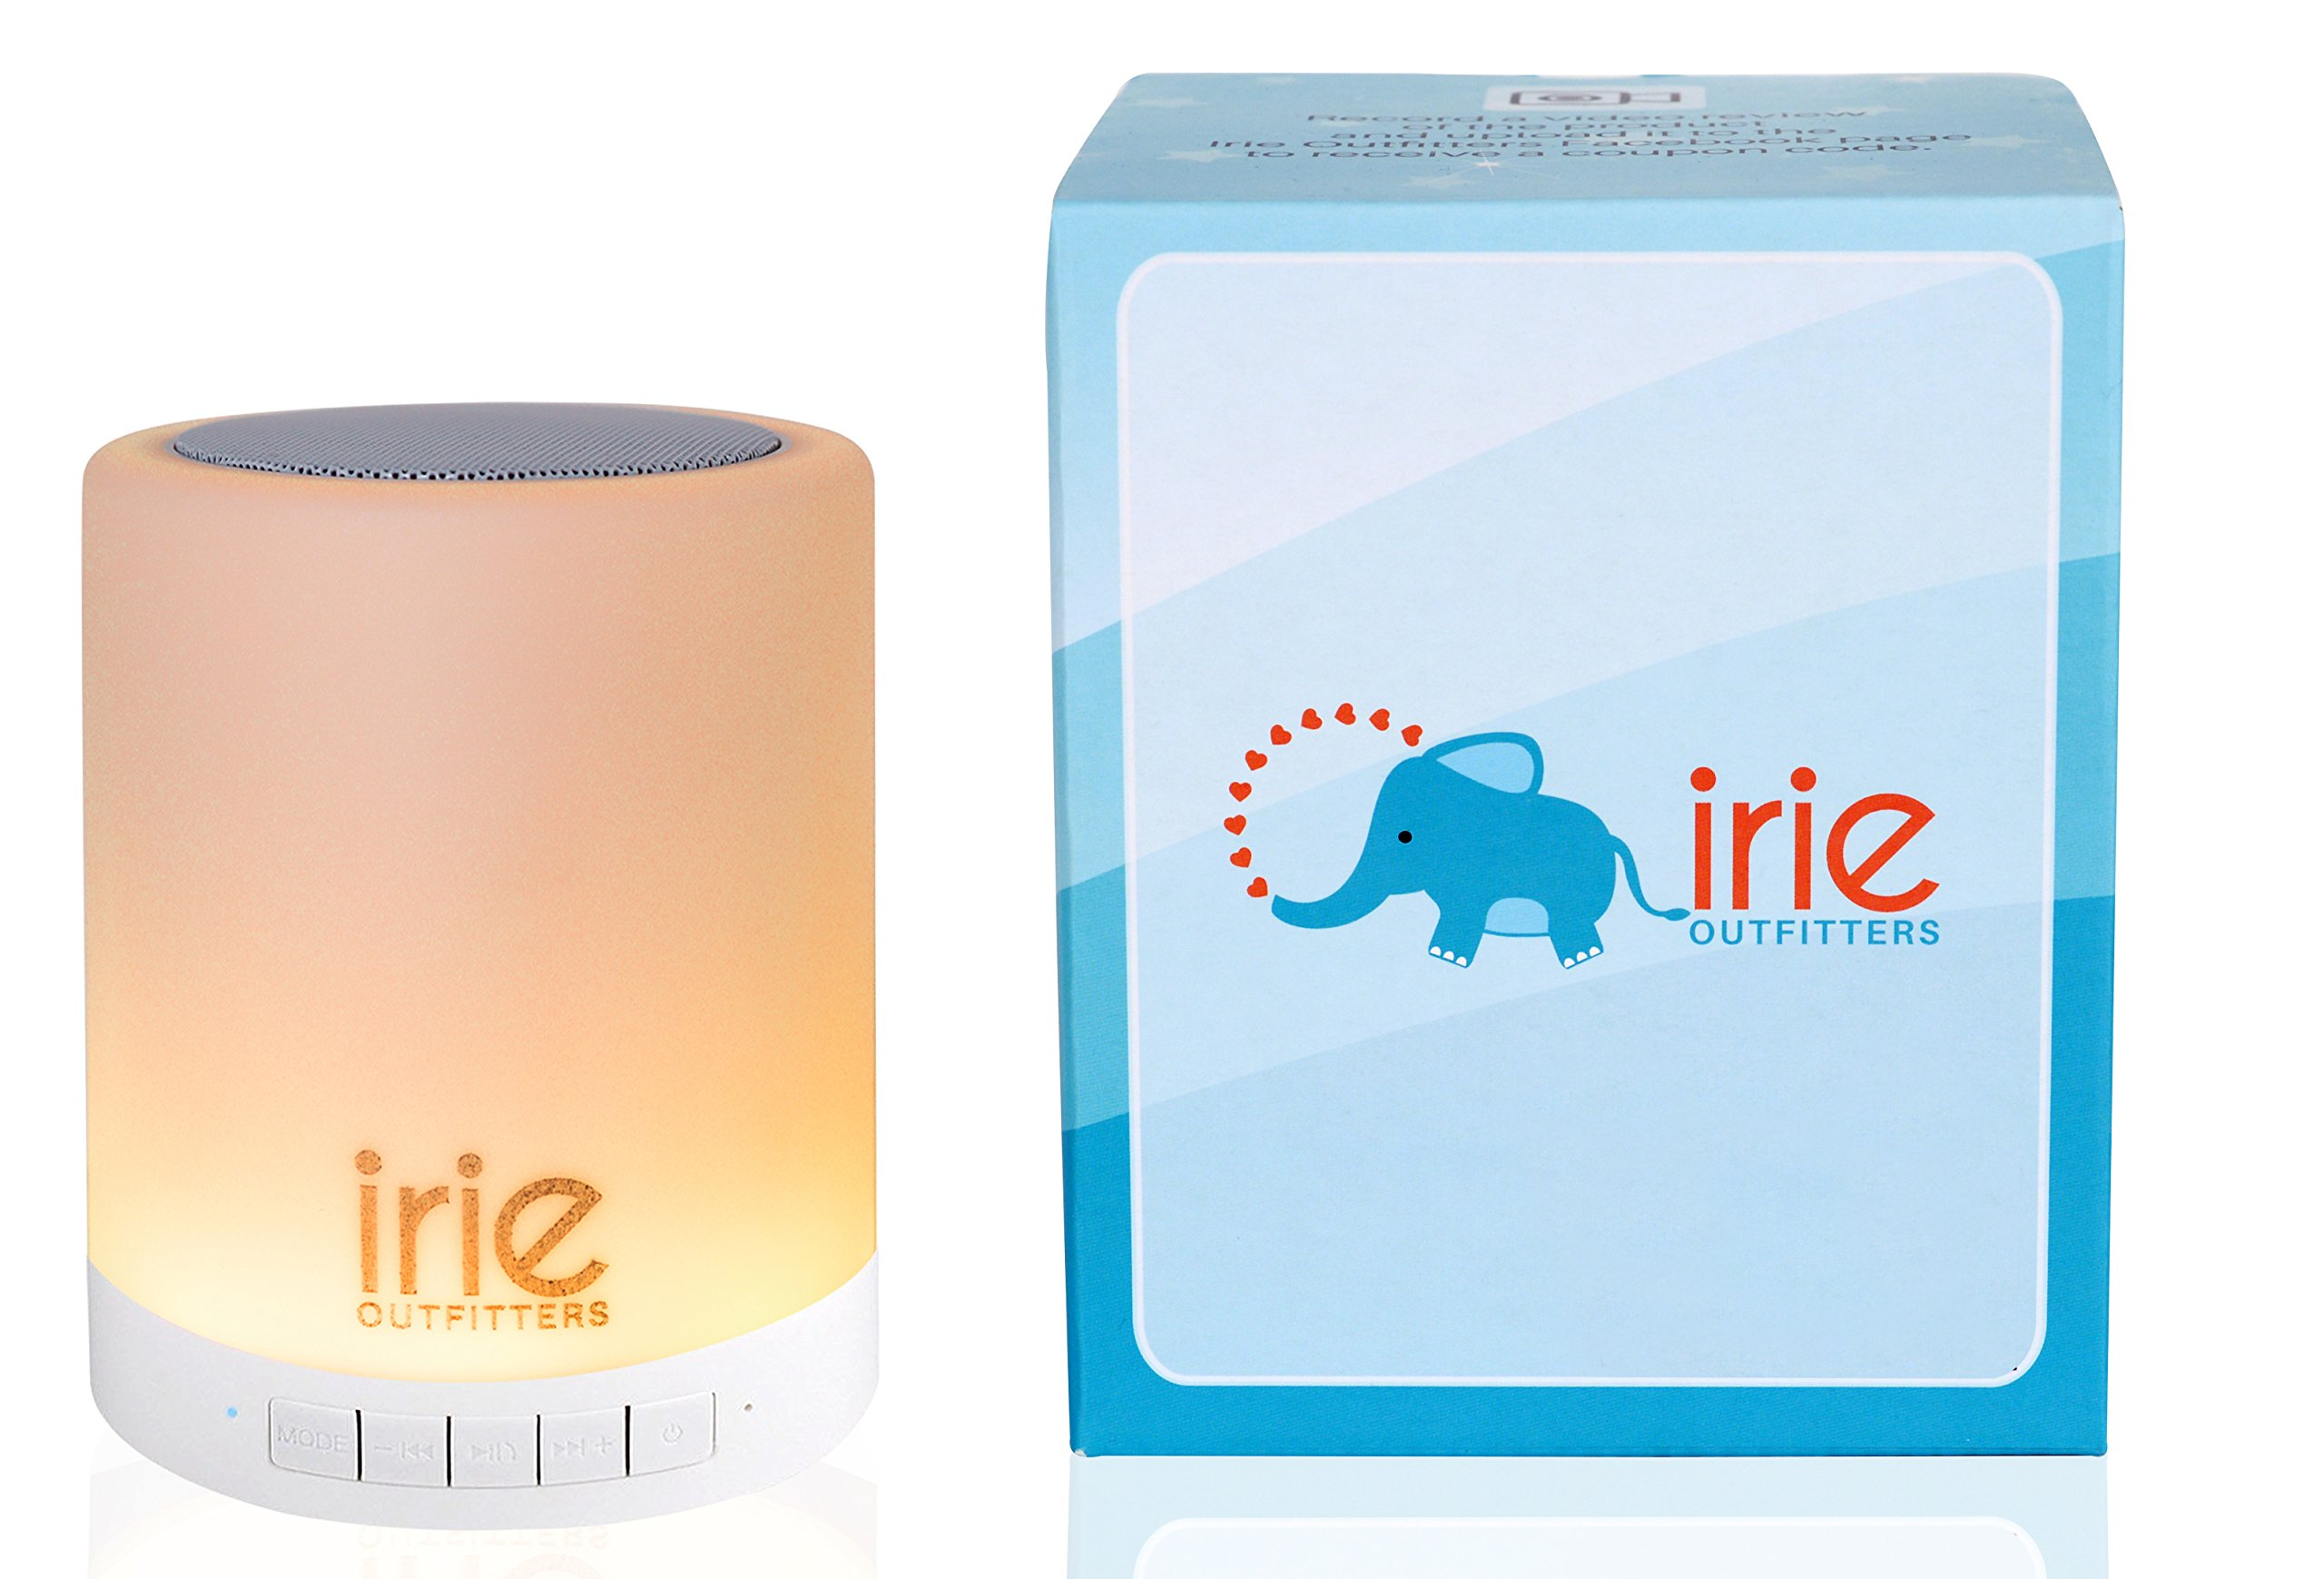 Irie Sleep Night Light and Sound Machine for babies, toddlers, and young children.